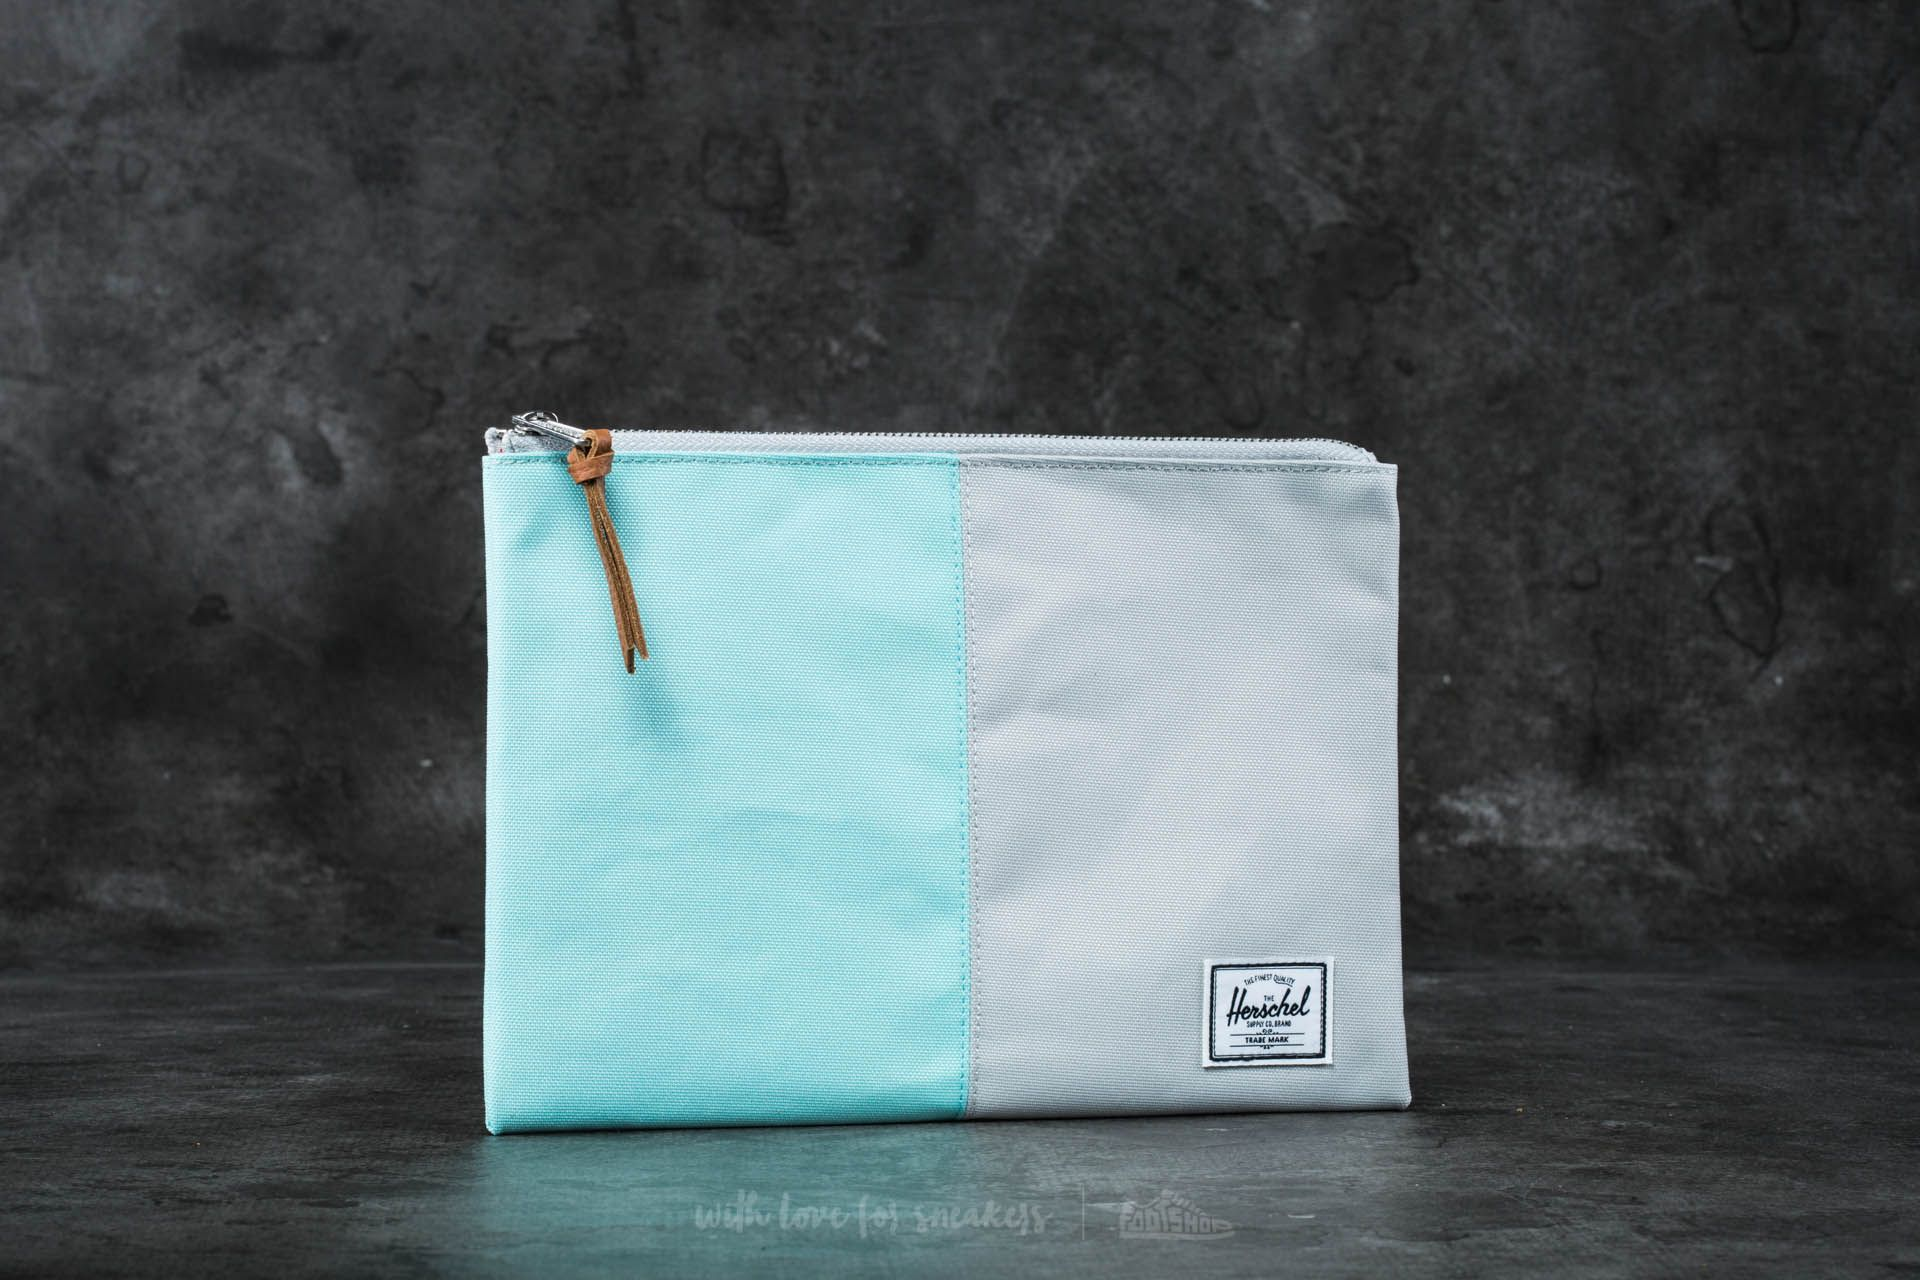 Herschel Supply Co. Network Pouch Blue Tint/ Glacier Grey - 16525